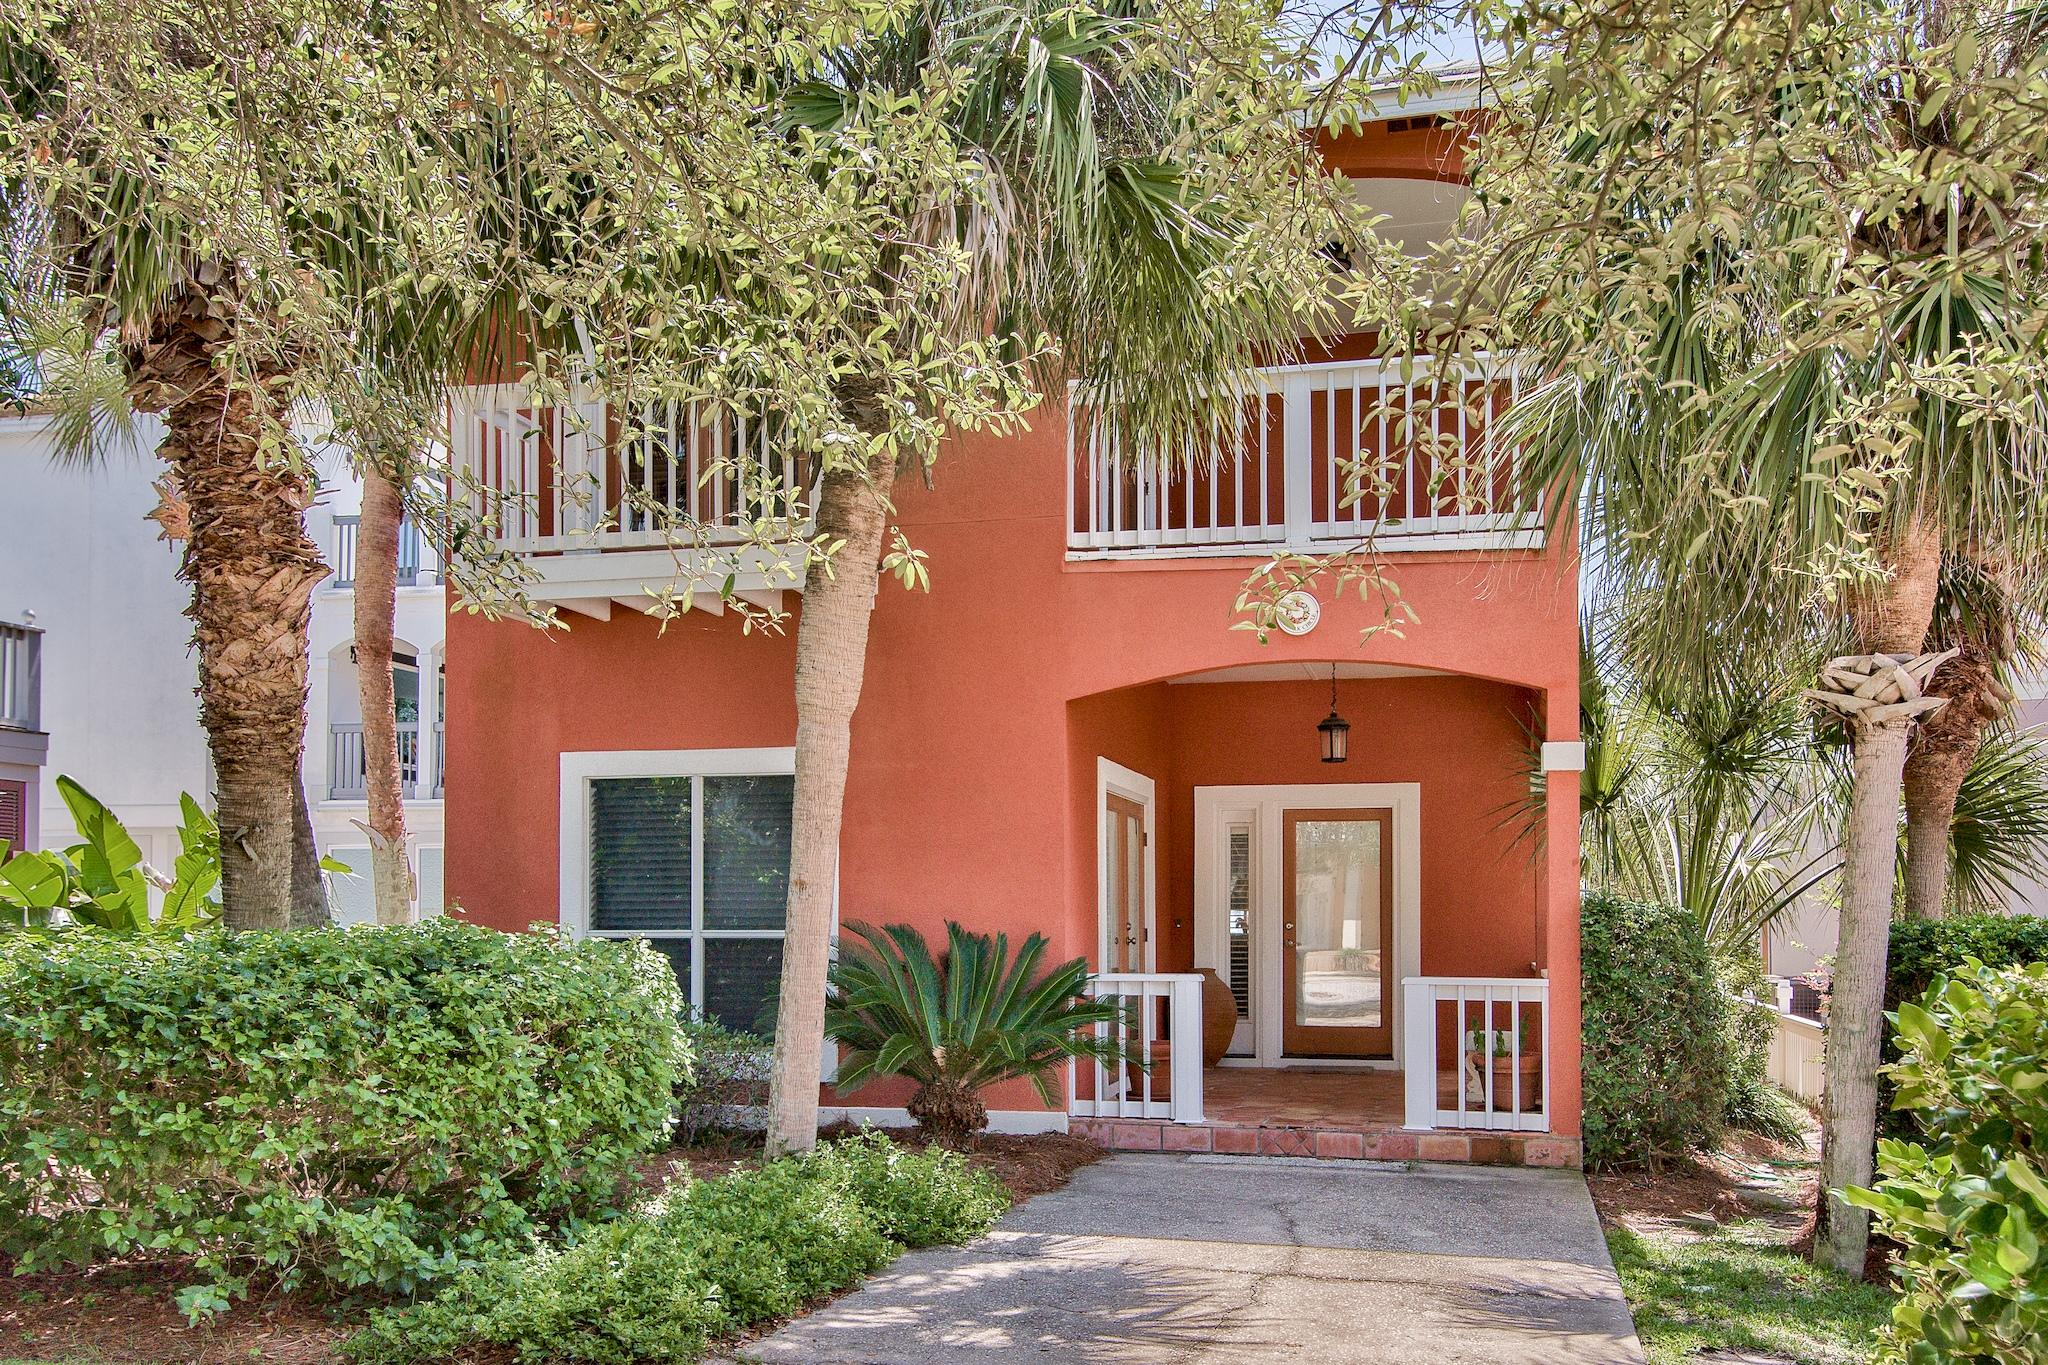 This stunning coastal beach cottage is prominently located south of 30A in the Heart of Seagrove Bea